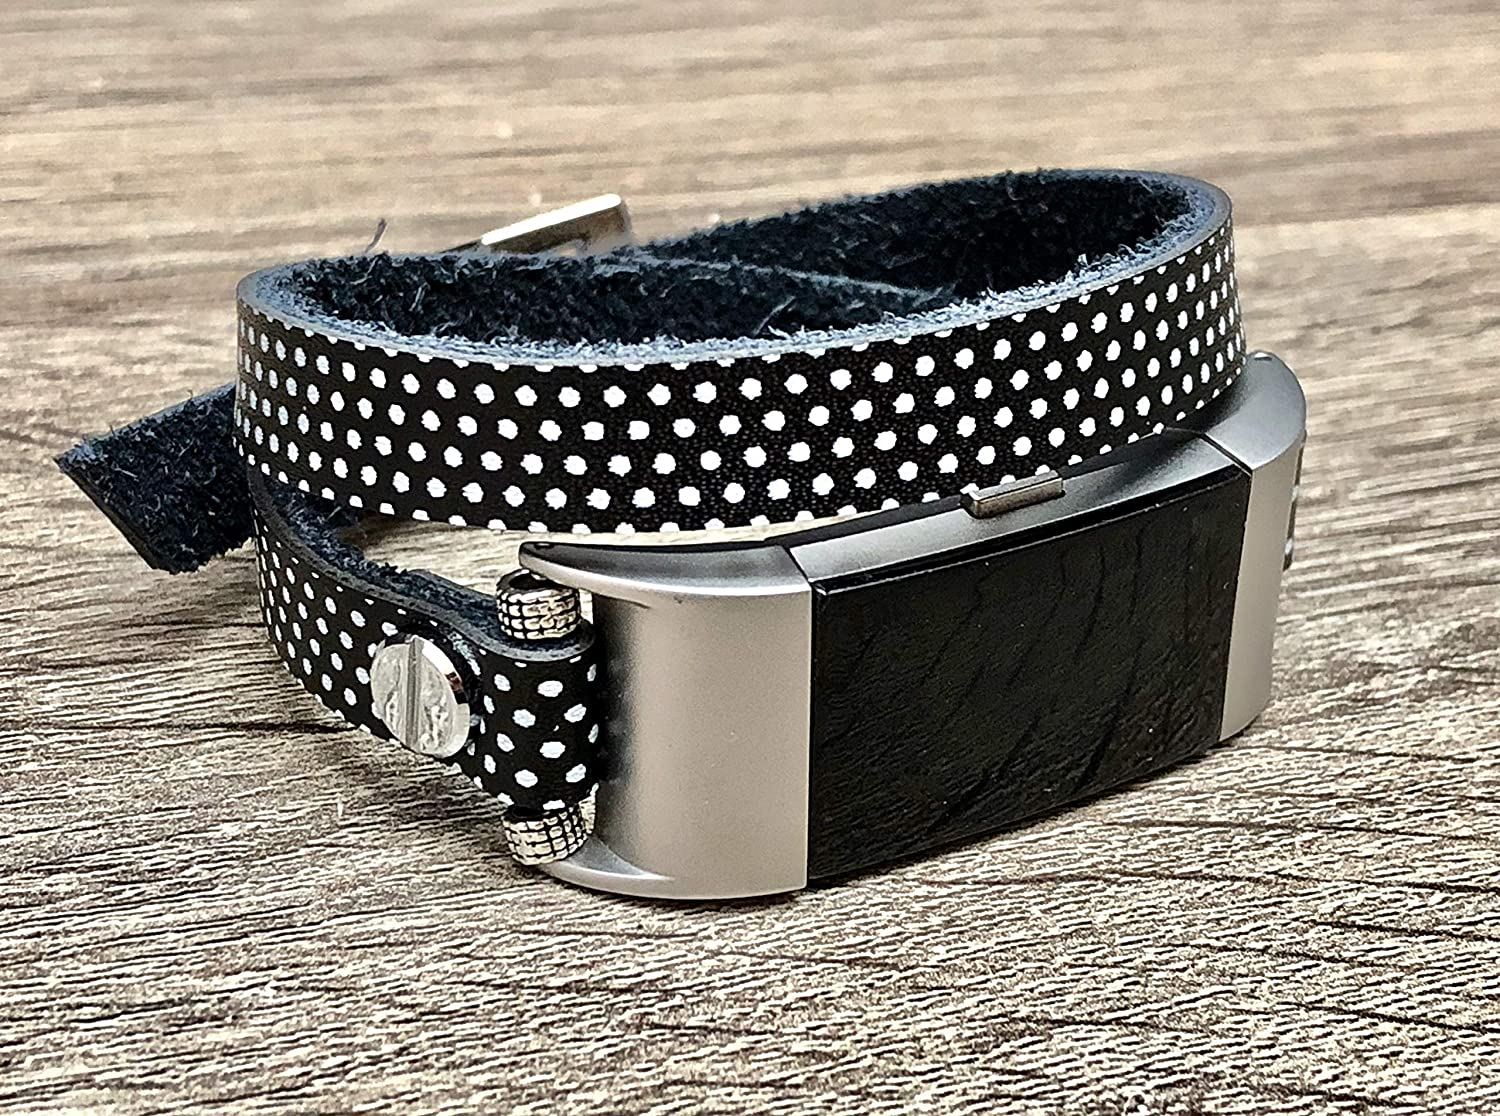 Polka Dots Bracelet for Fitbit Charge 2 Women Design Handmade 10mm Slim Leather Fitbit Charge 2 Band Adjustable Black /& White Fitbit Bracelet Double Tour Luxury Soft Genuine Leather Band